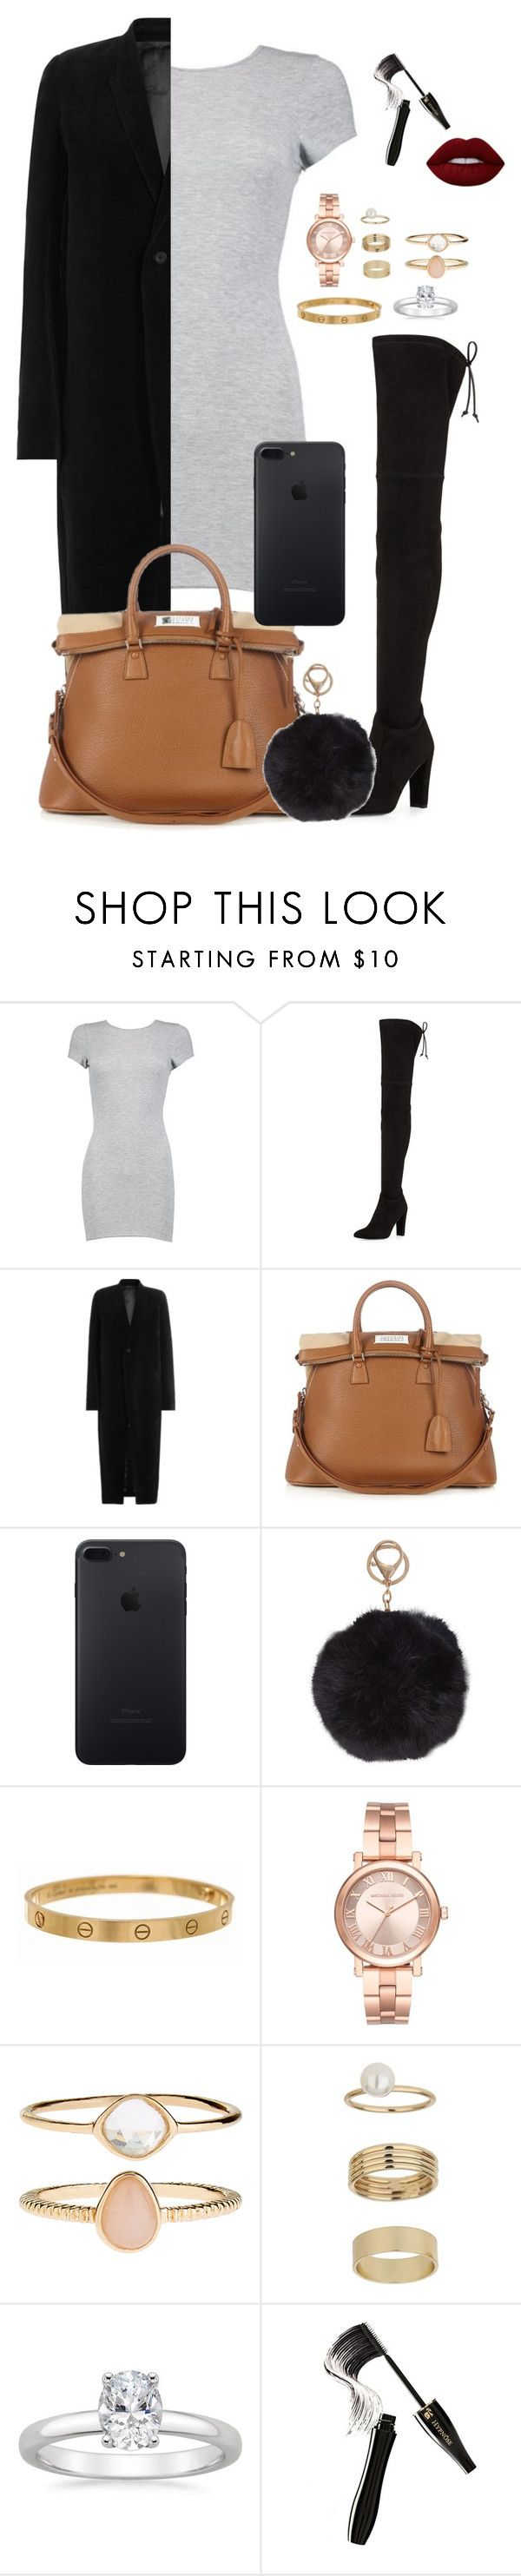 """Sem título #889"" by sr-magcult-bieber-gomez ❤ liked on Polyvore featuring Boohoo, Stuart Weitzman, Rick Owens, Maison Margiela, Humble Chic, Cartier, Michael Kors, Accessorize, Miss Selfridge and Lancôme"